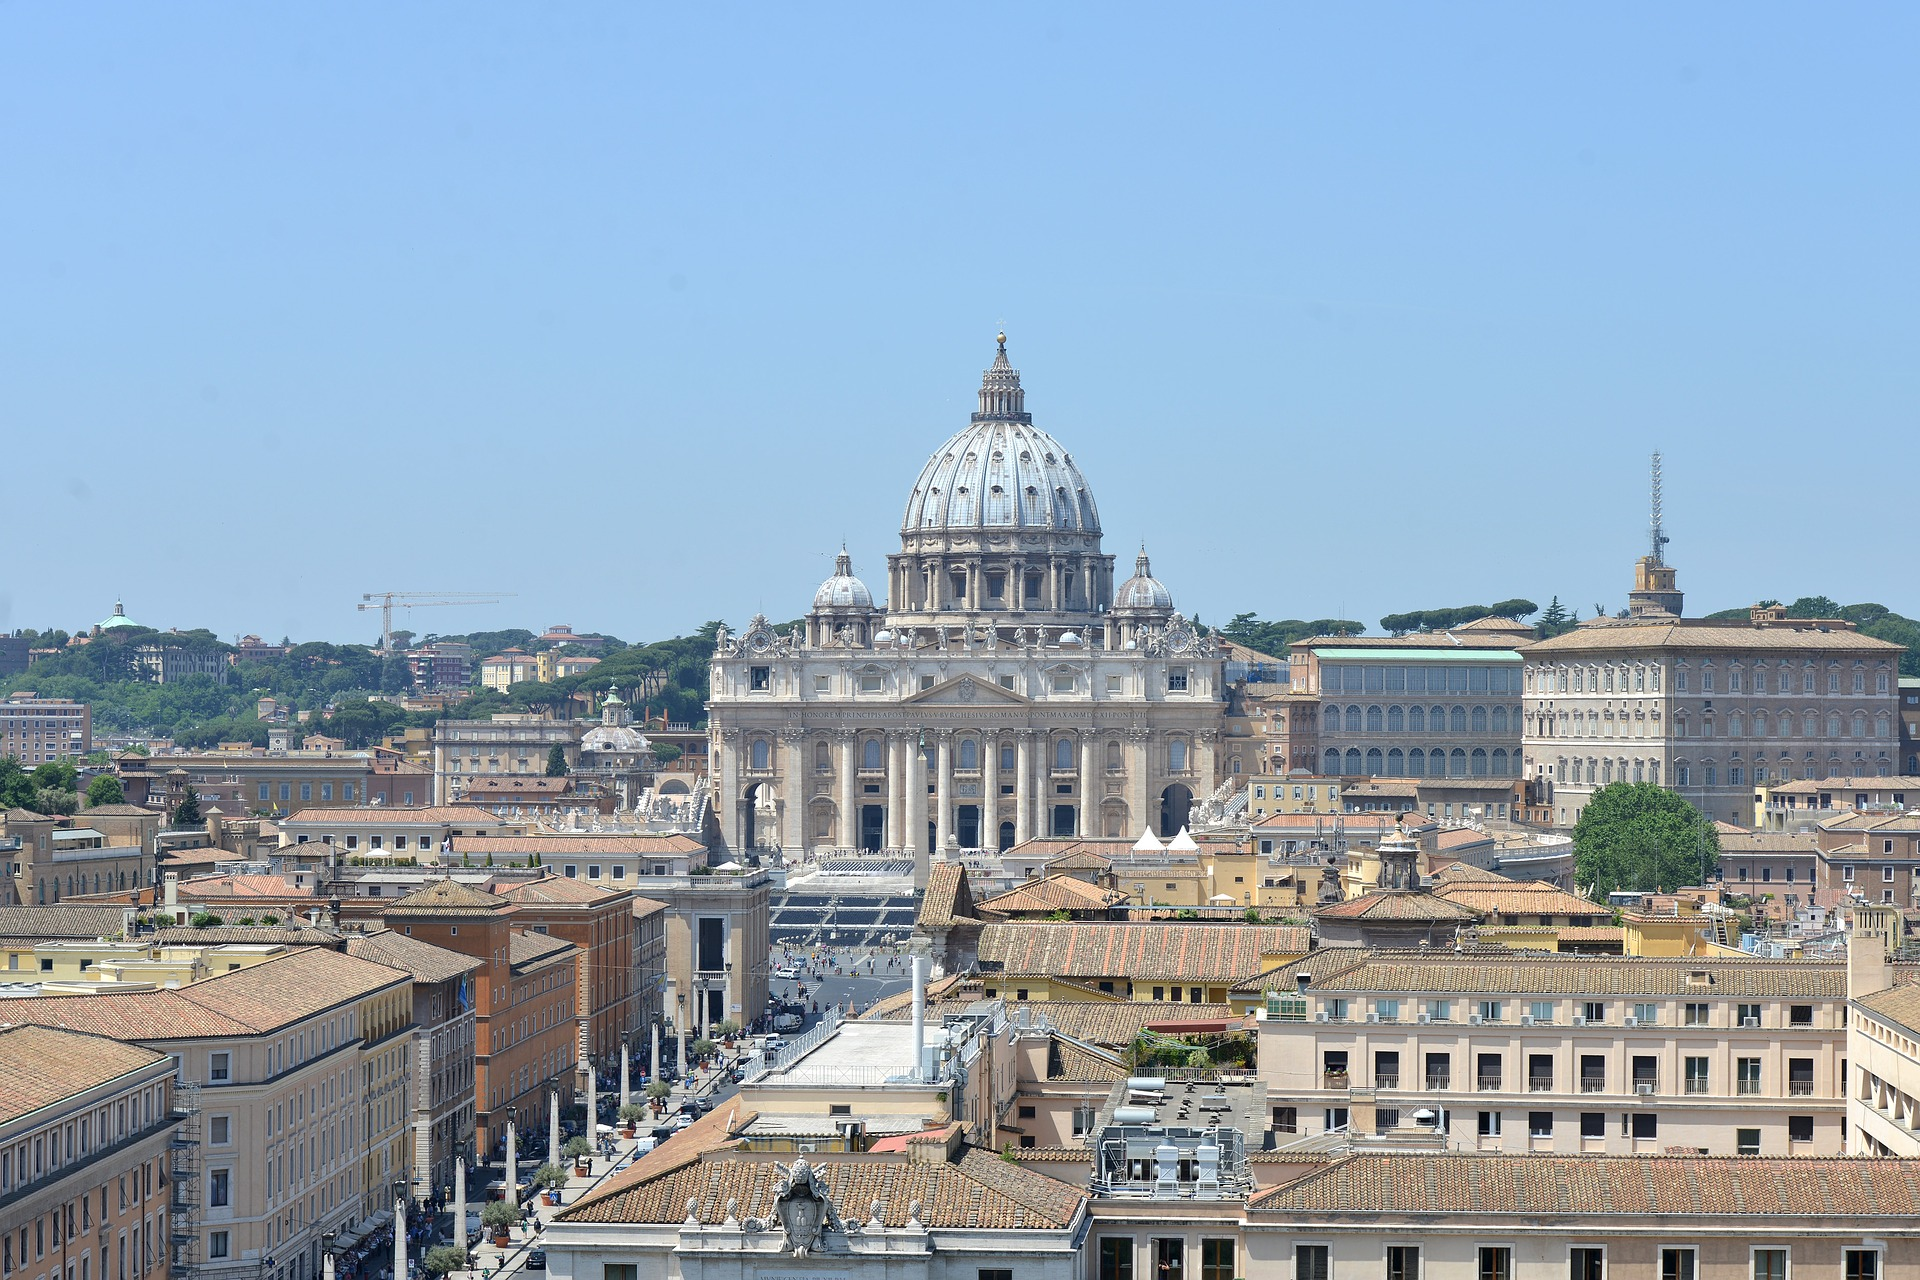 st-peters-basilica-2707204_1920